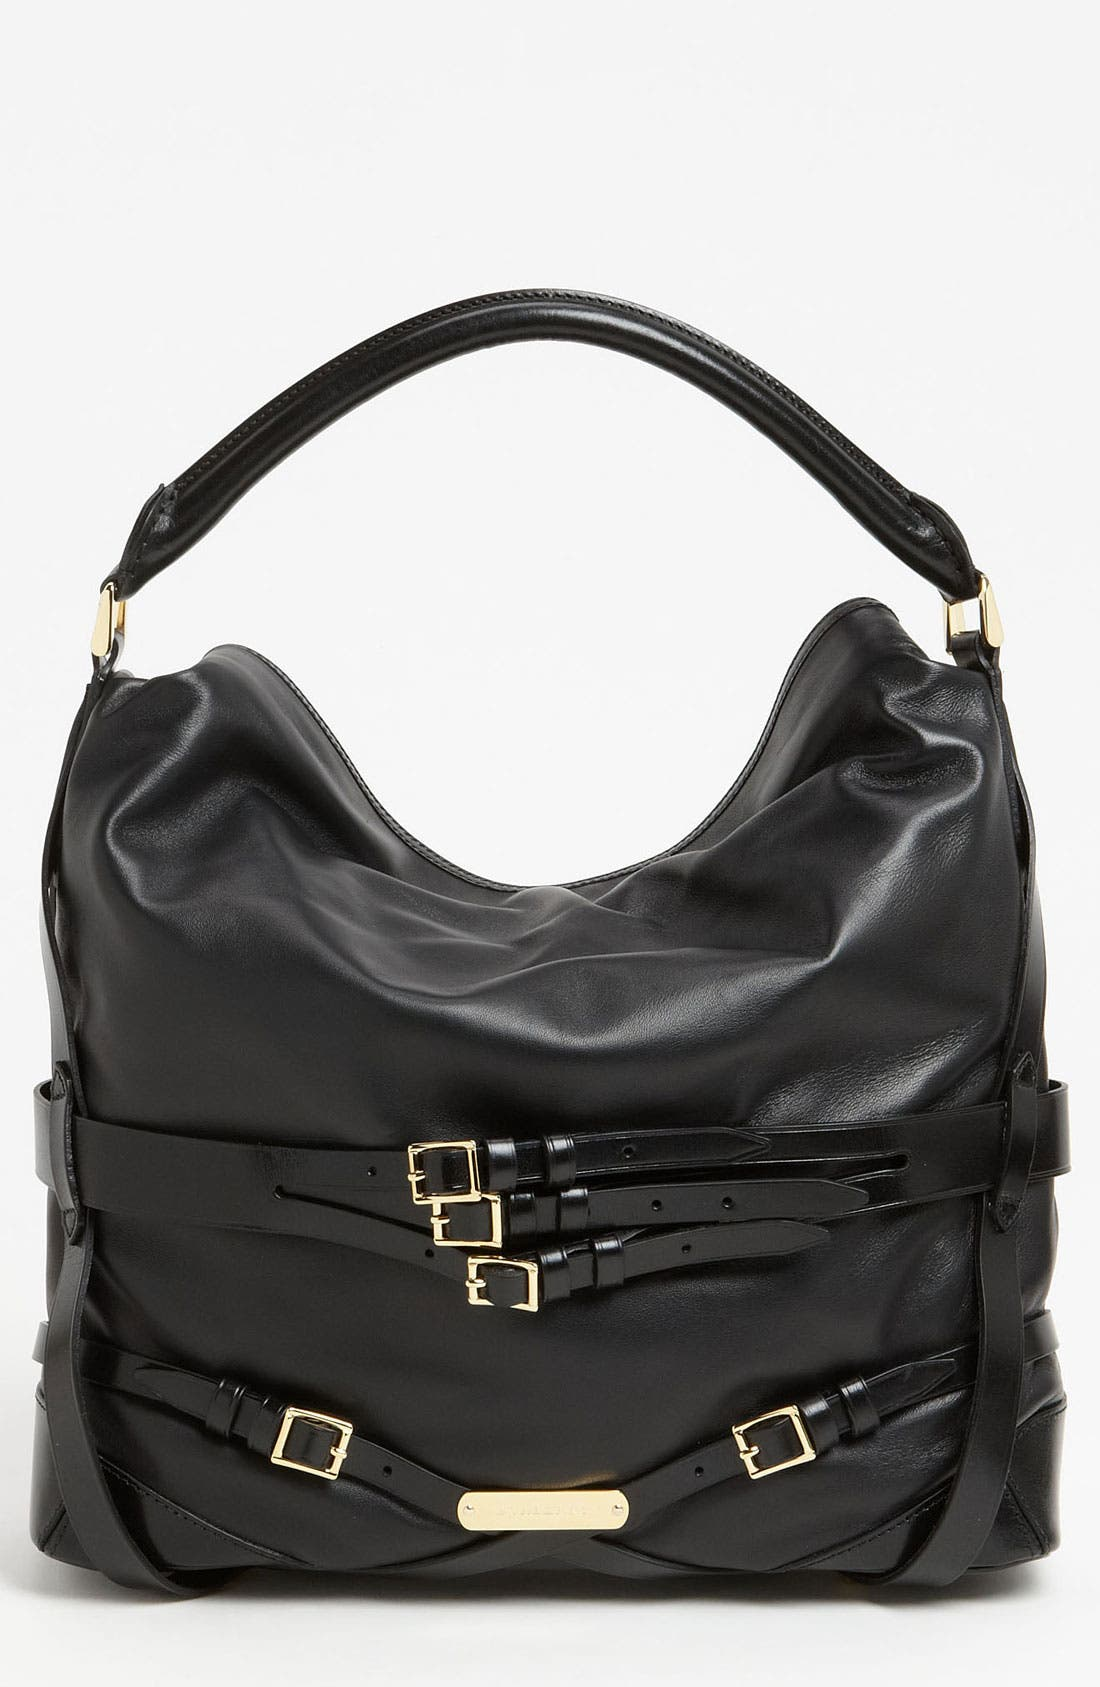 Main Image - Burberry 'Bridle' Leather Hobo